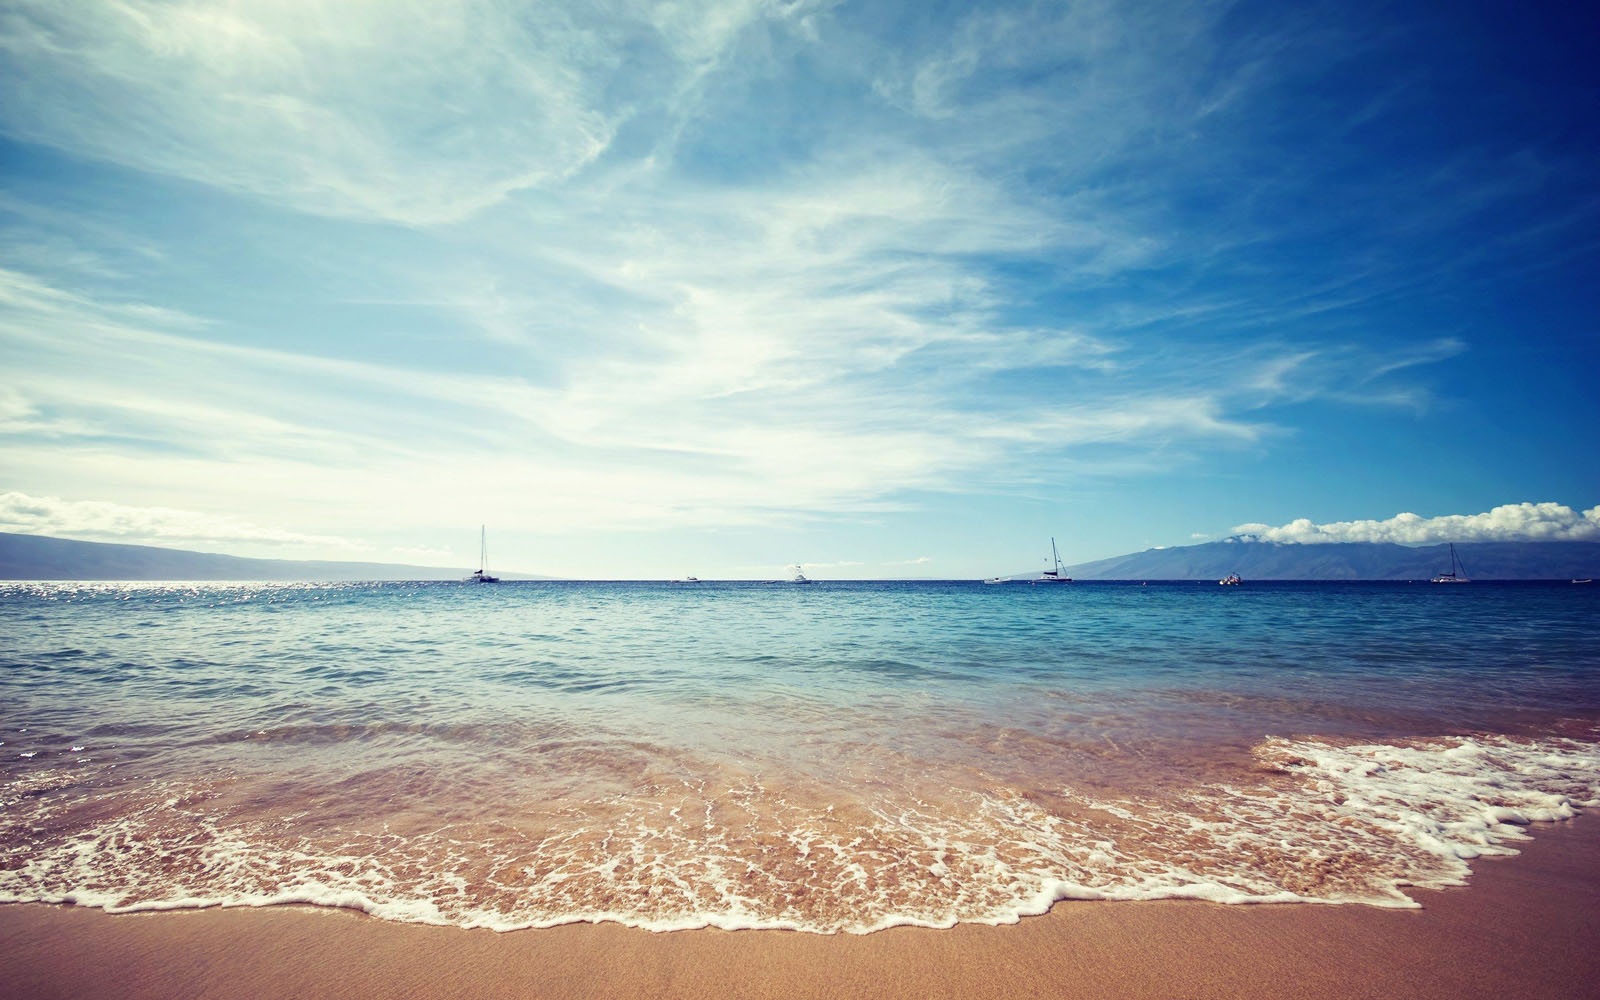 40 beautiful beach wallpapers for your desktop mobile and tablet - hd